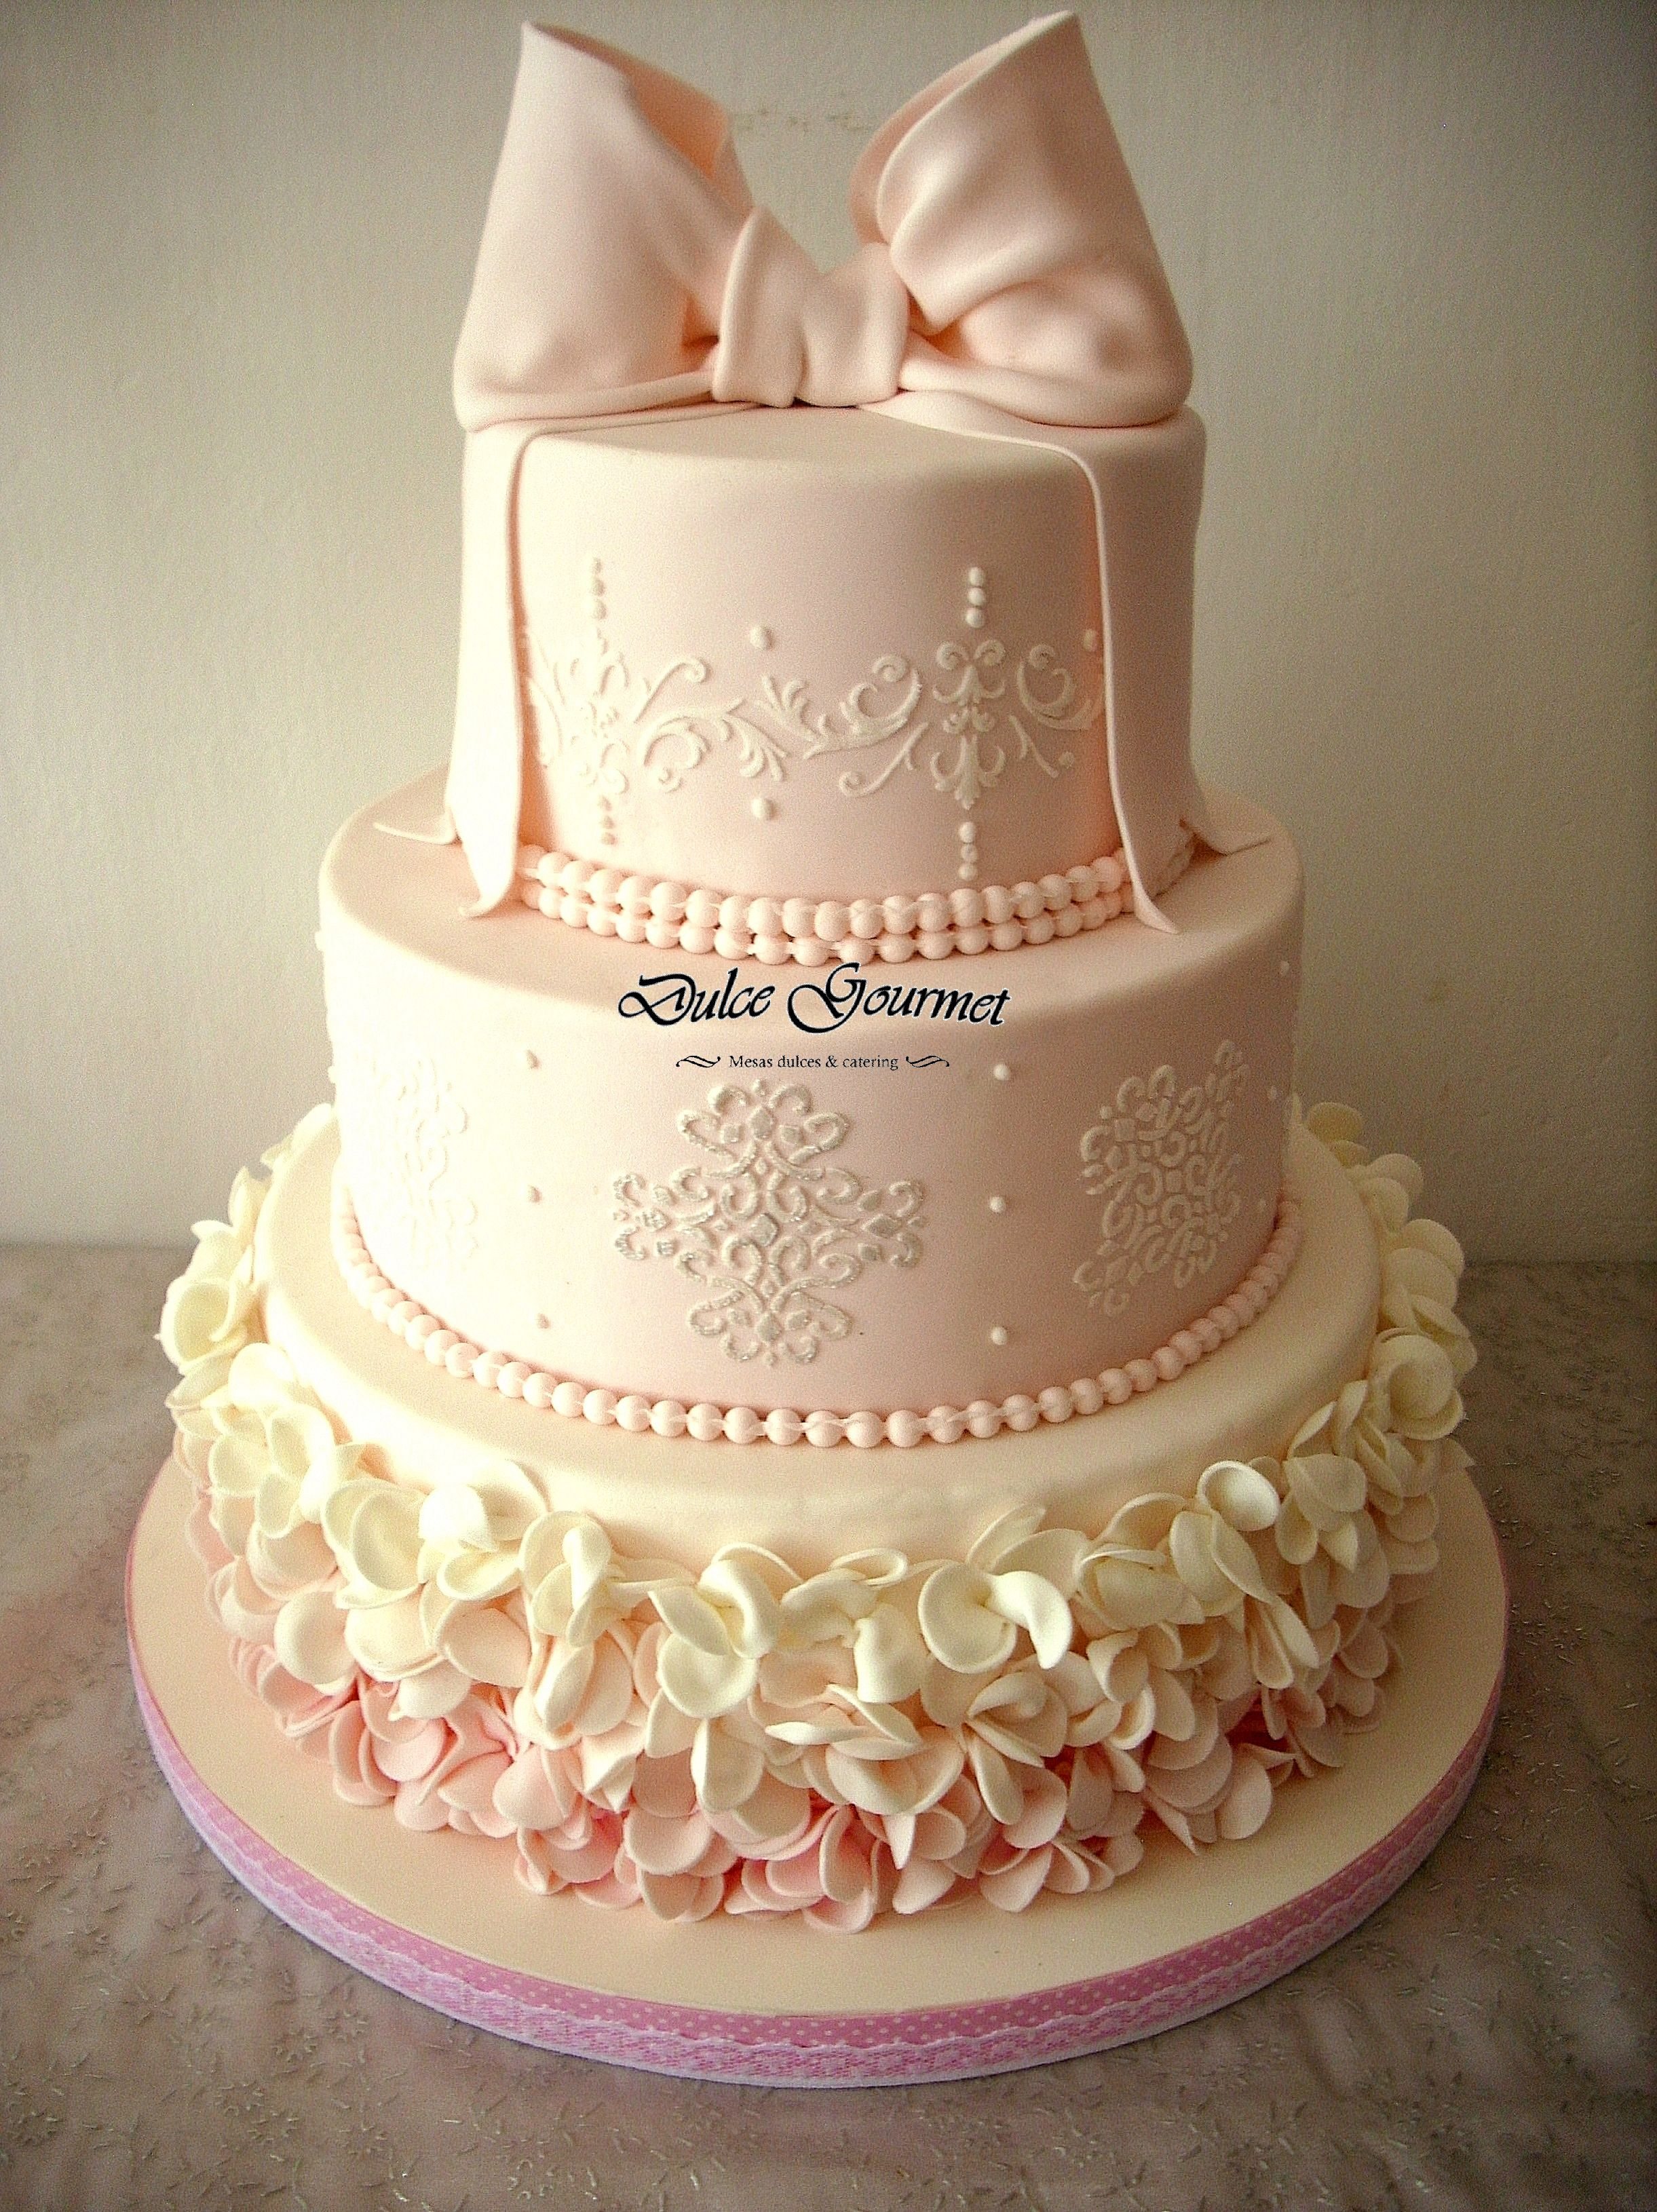 Vintage Cake Decoration Ideas : Pink ombre baptism cake - Three tier cake with bow in ...